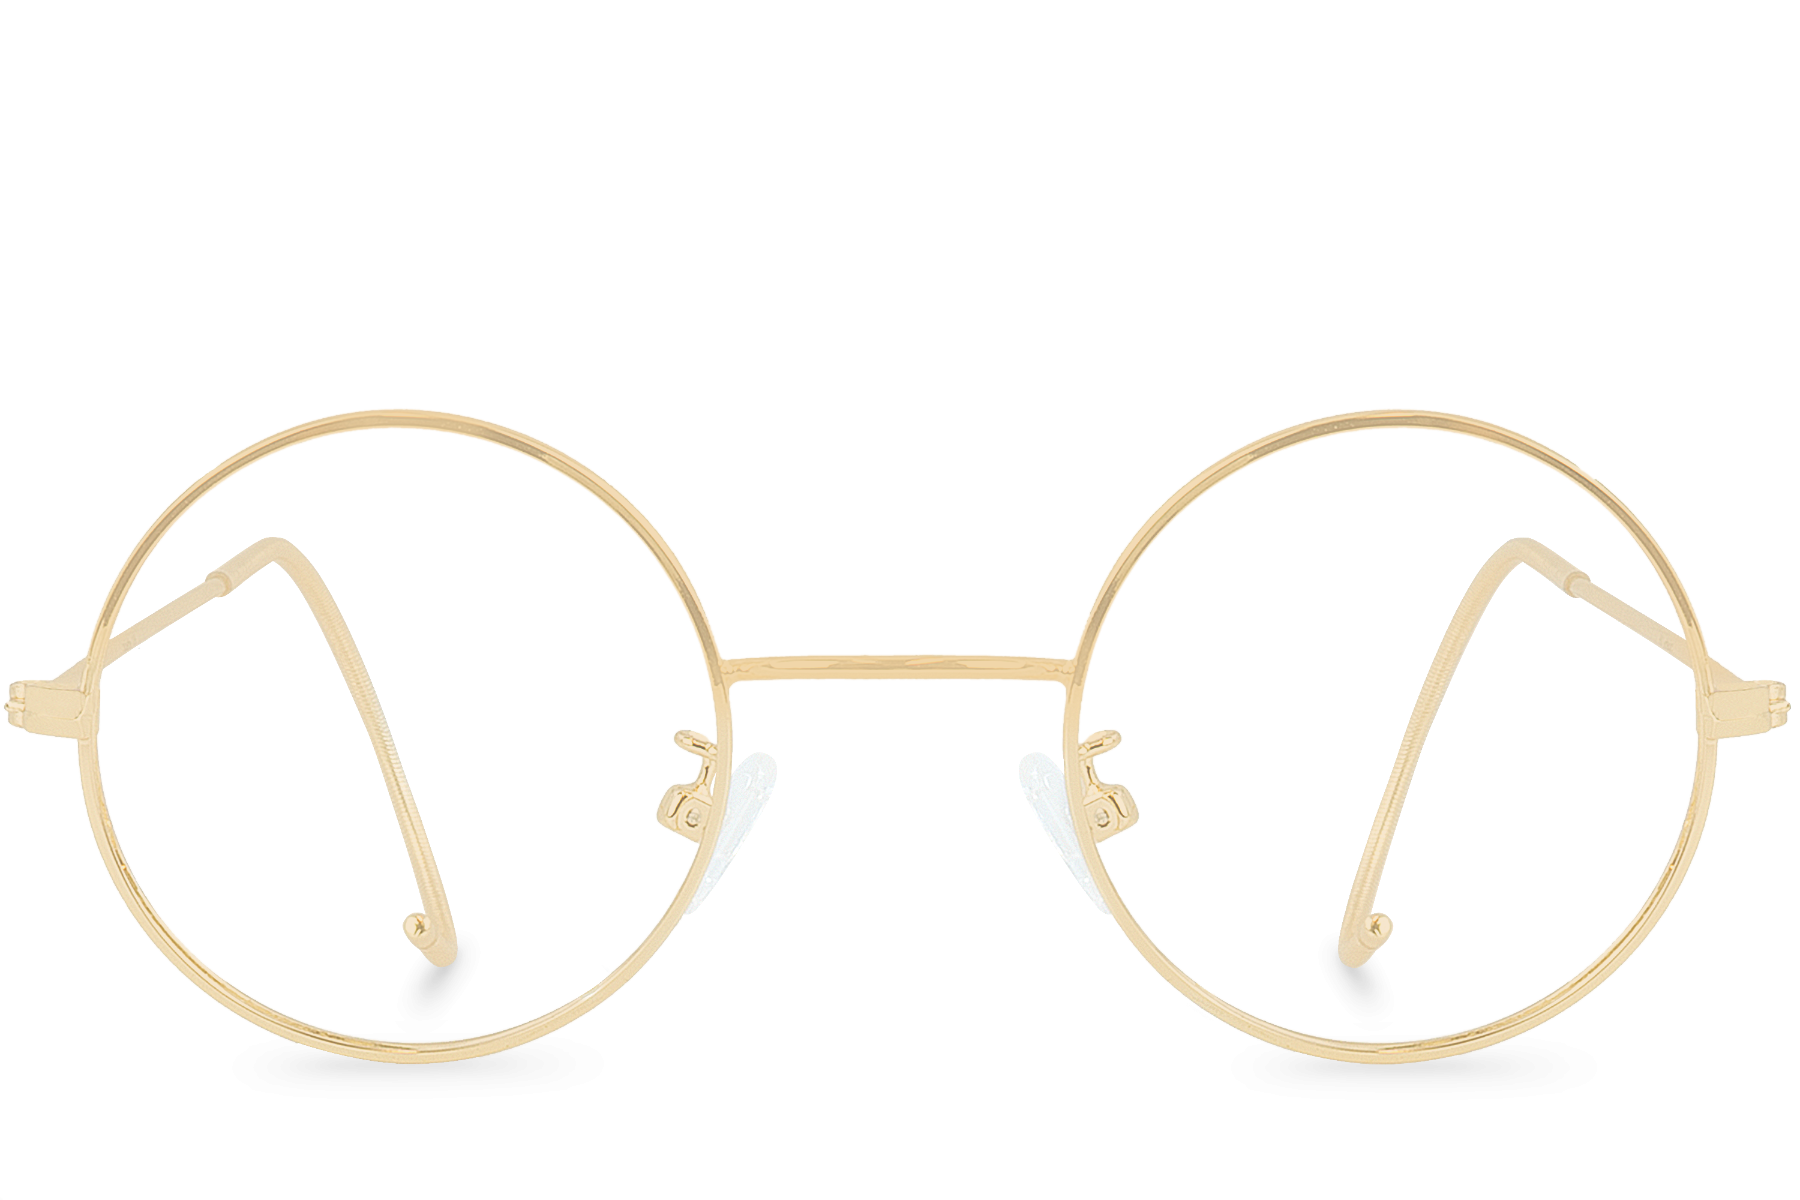 Sunglasses clipart gold. Glasses png images free